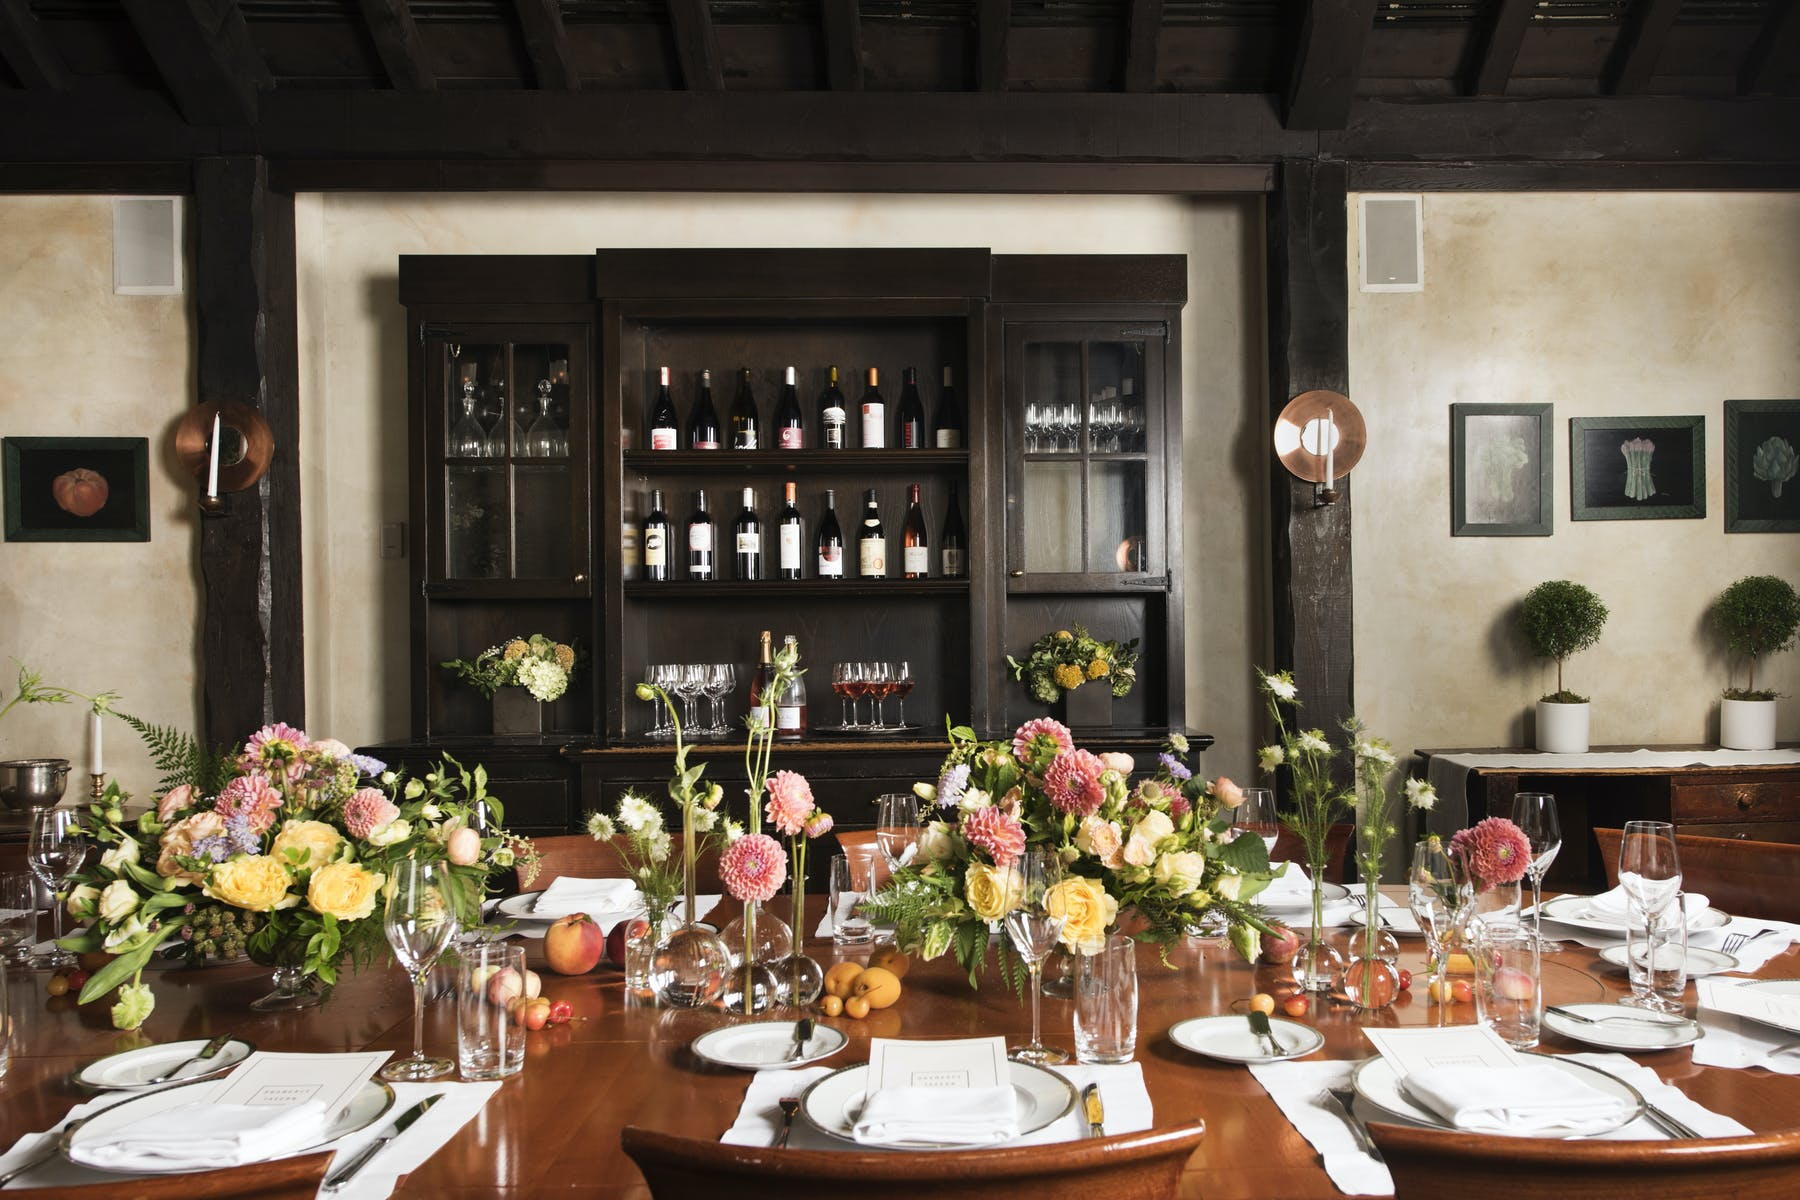 Private dining rooms provide a beautiful backdrop for your private event